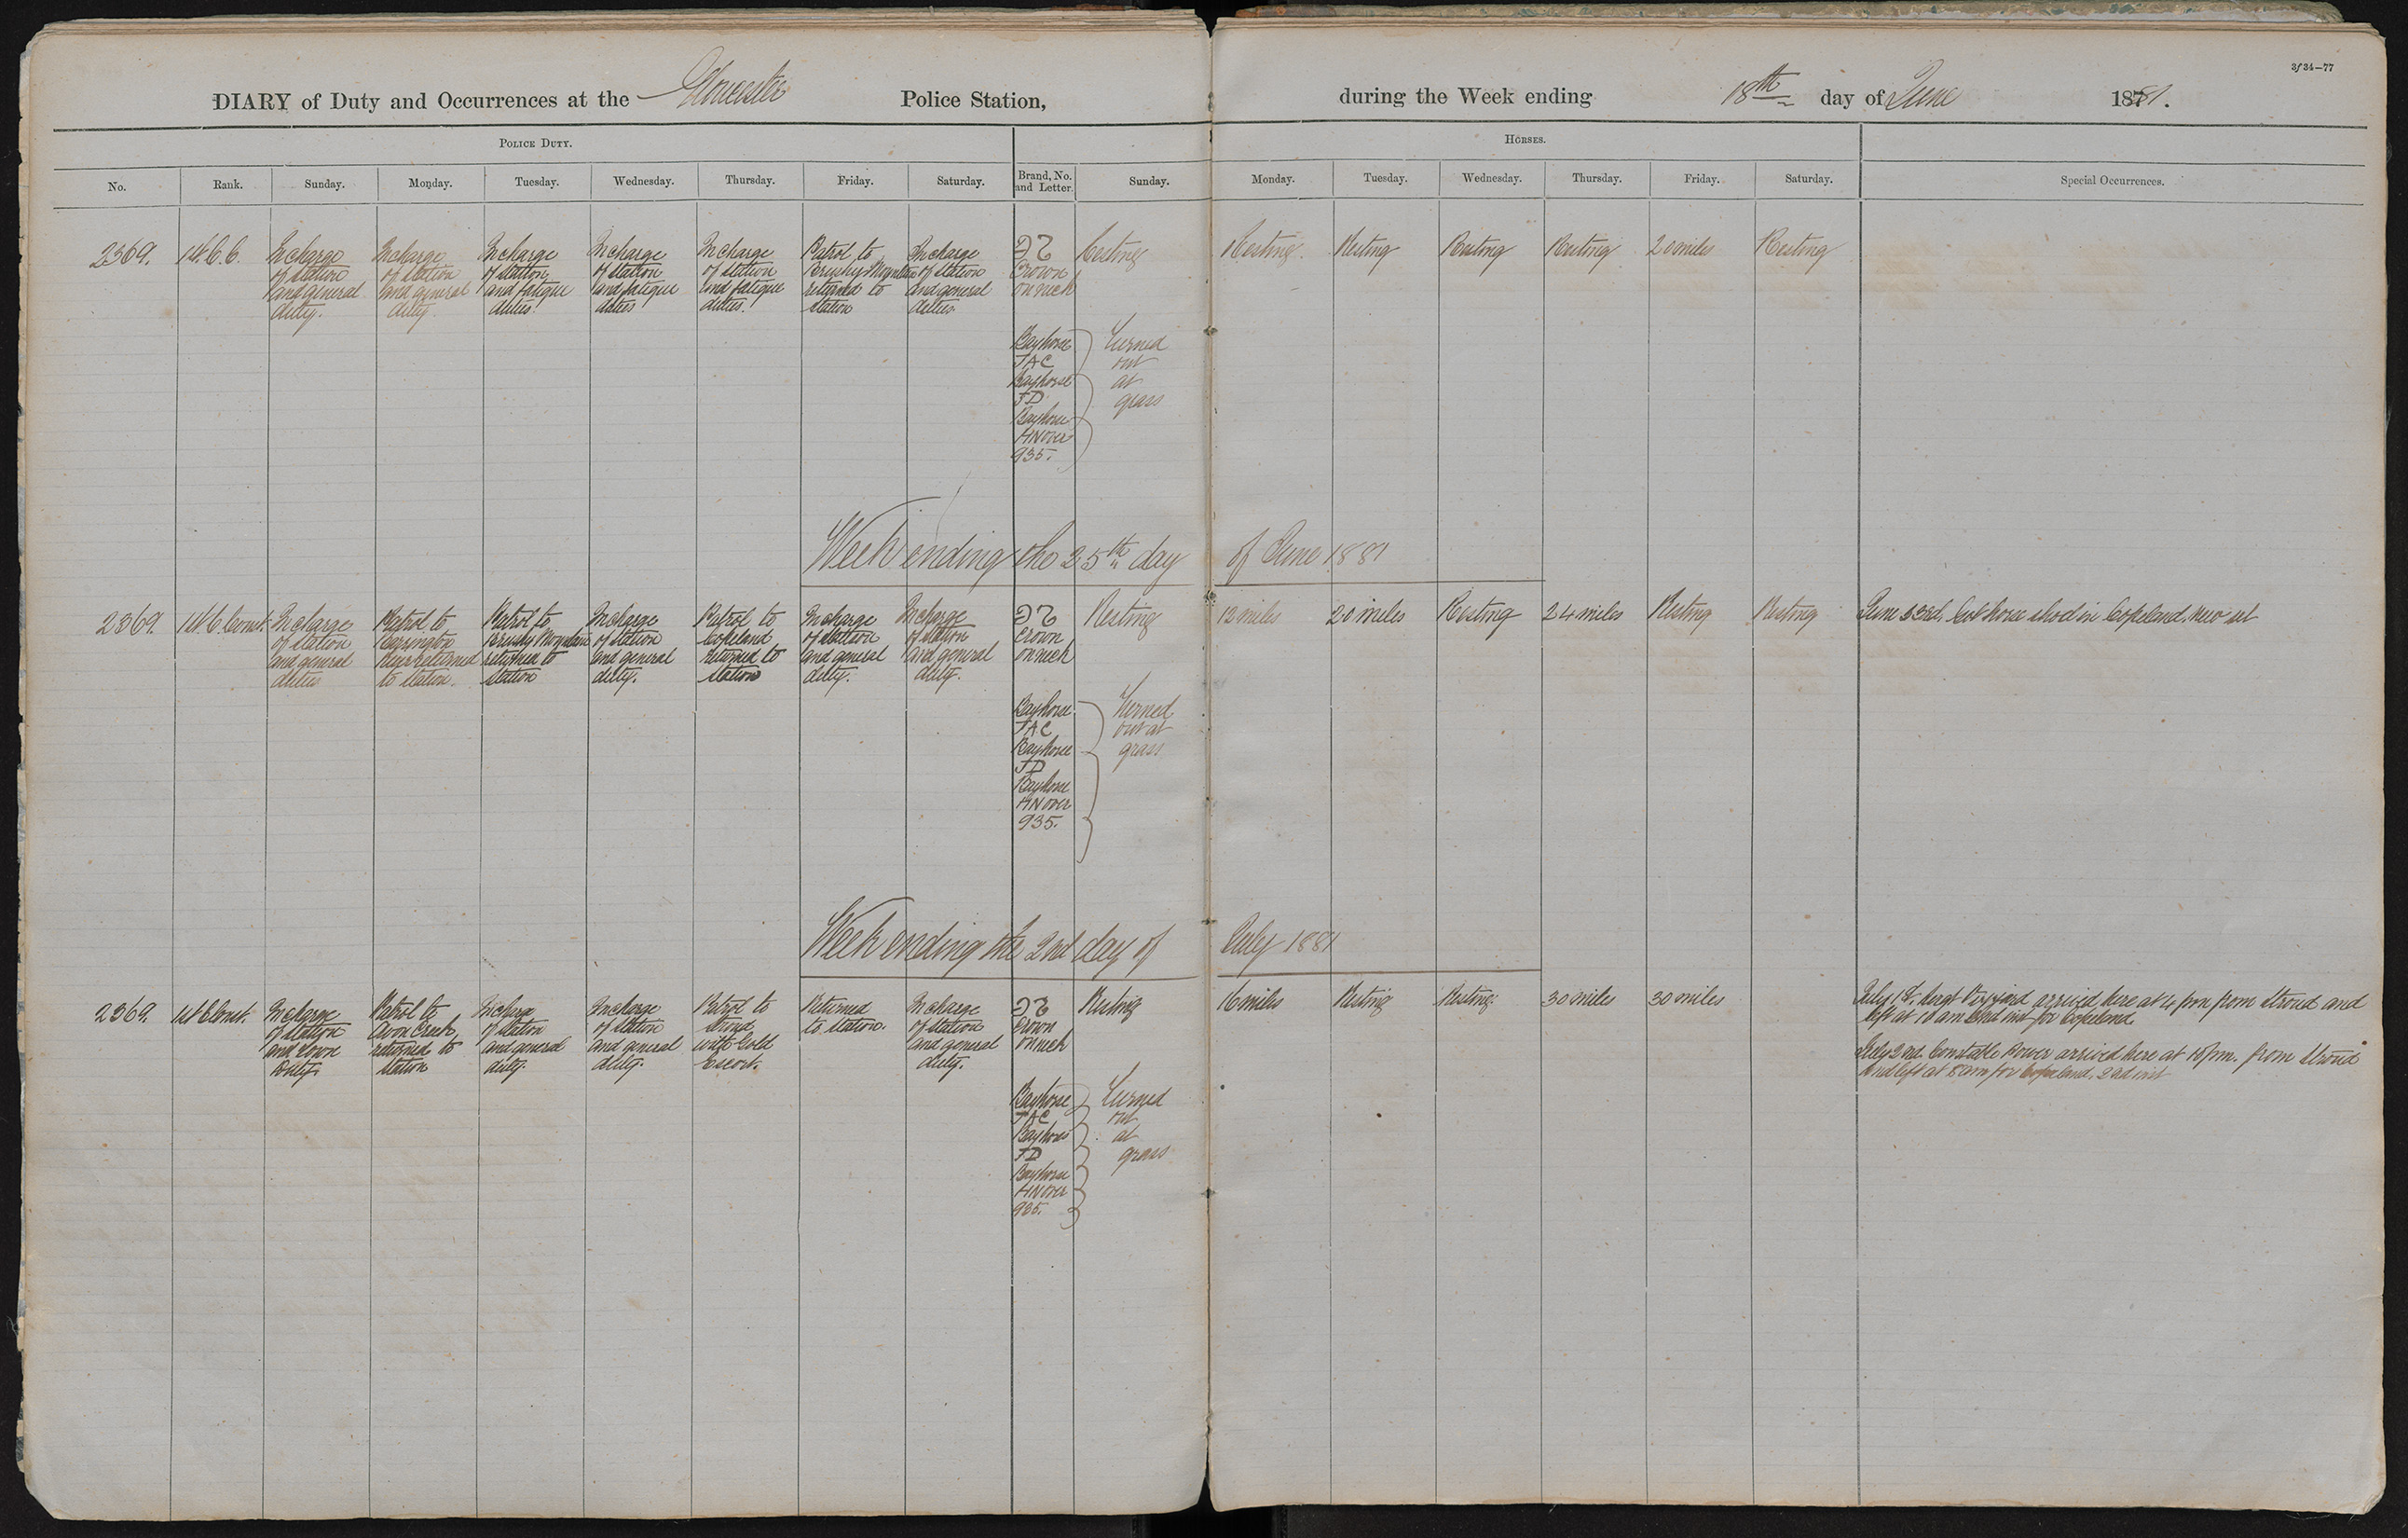 Diary of duty and occurrences at the Gloucester Police Station during the week ending the 18th day of June 1881